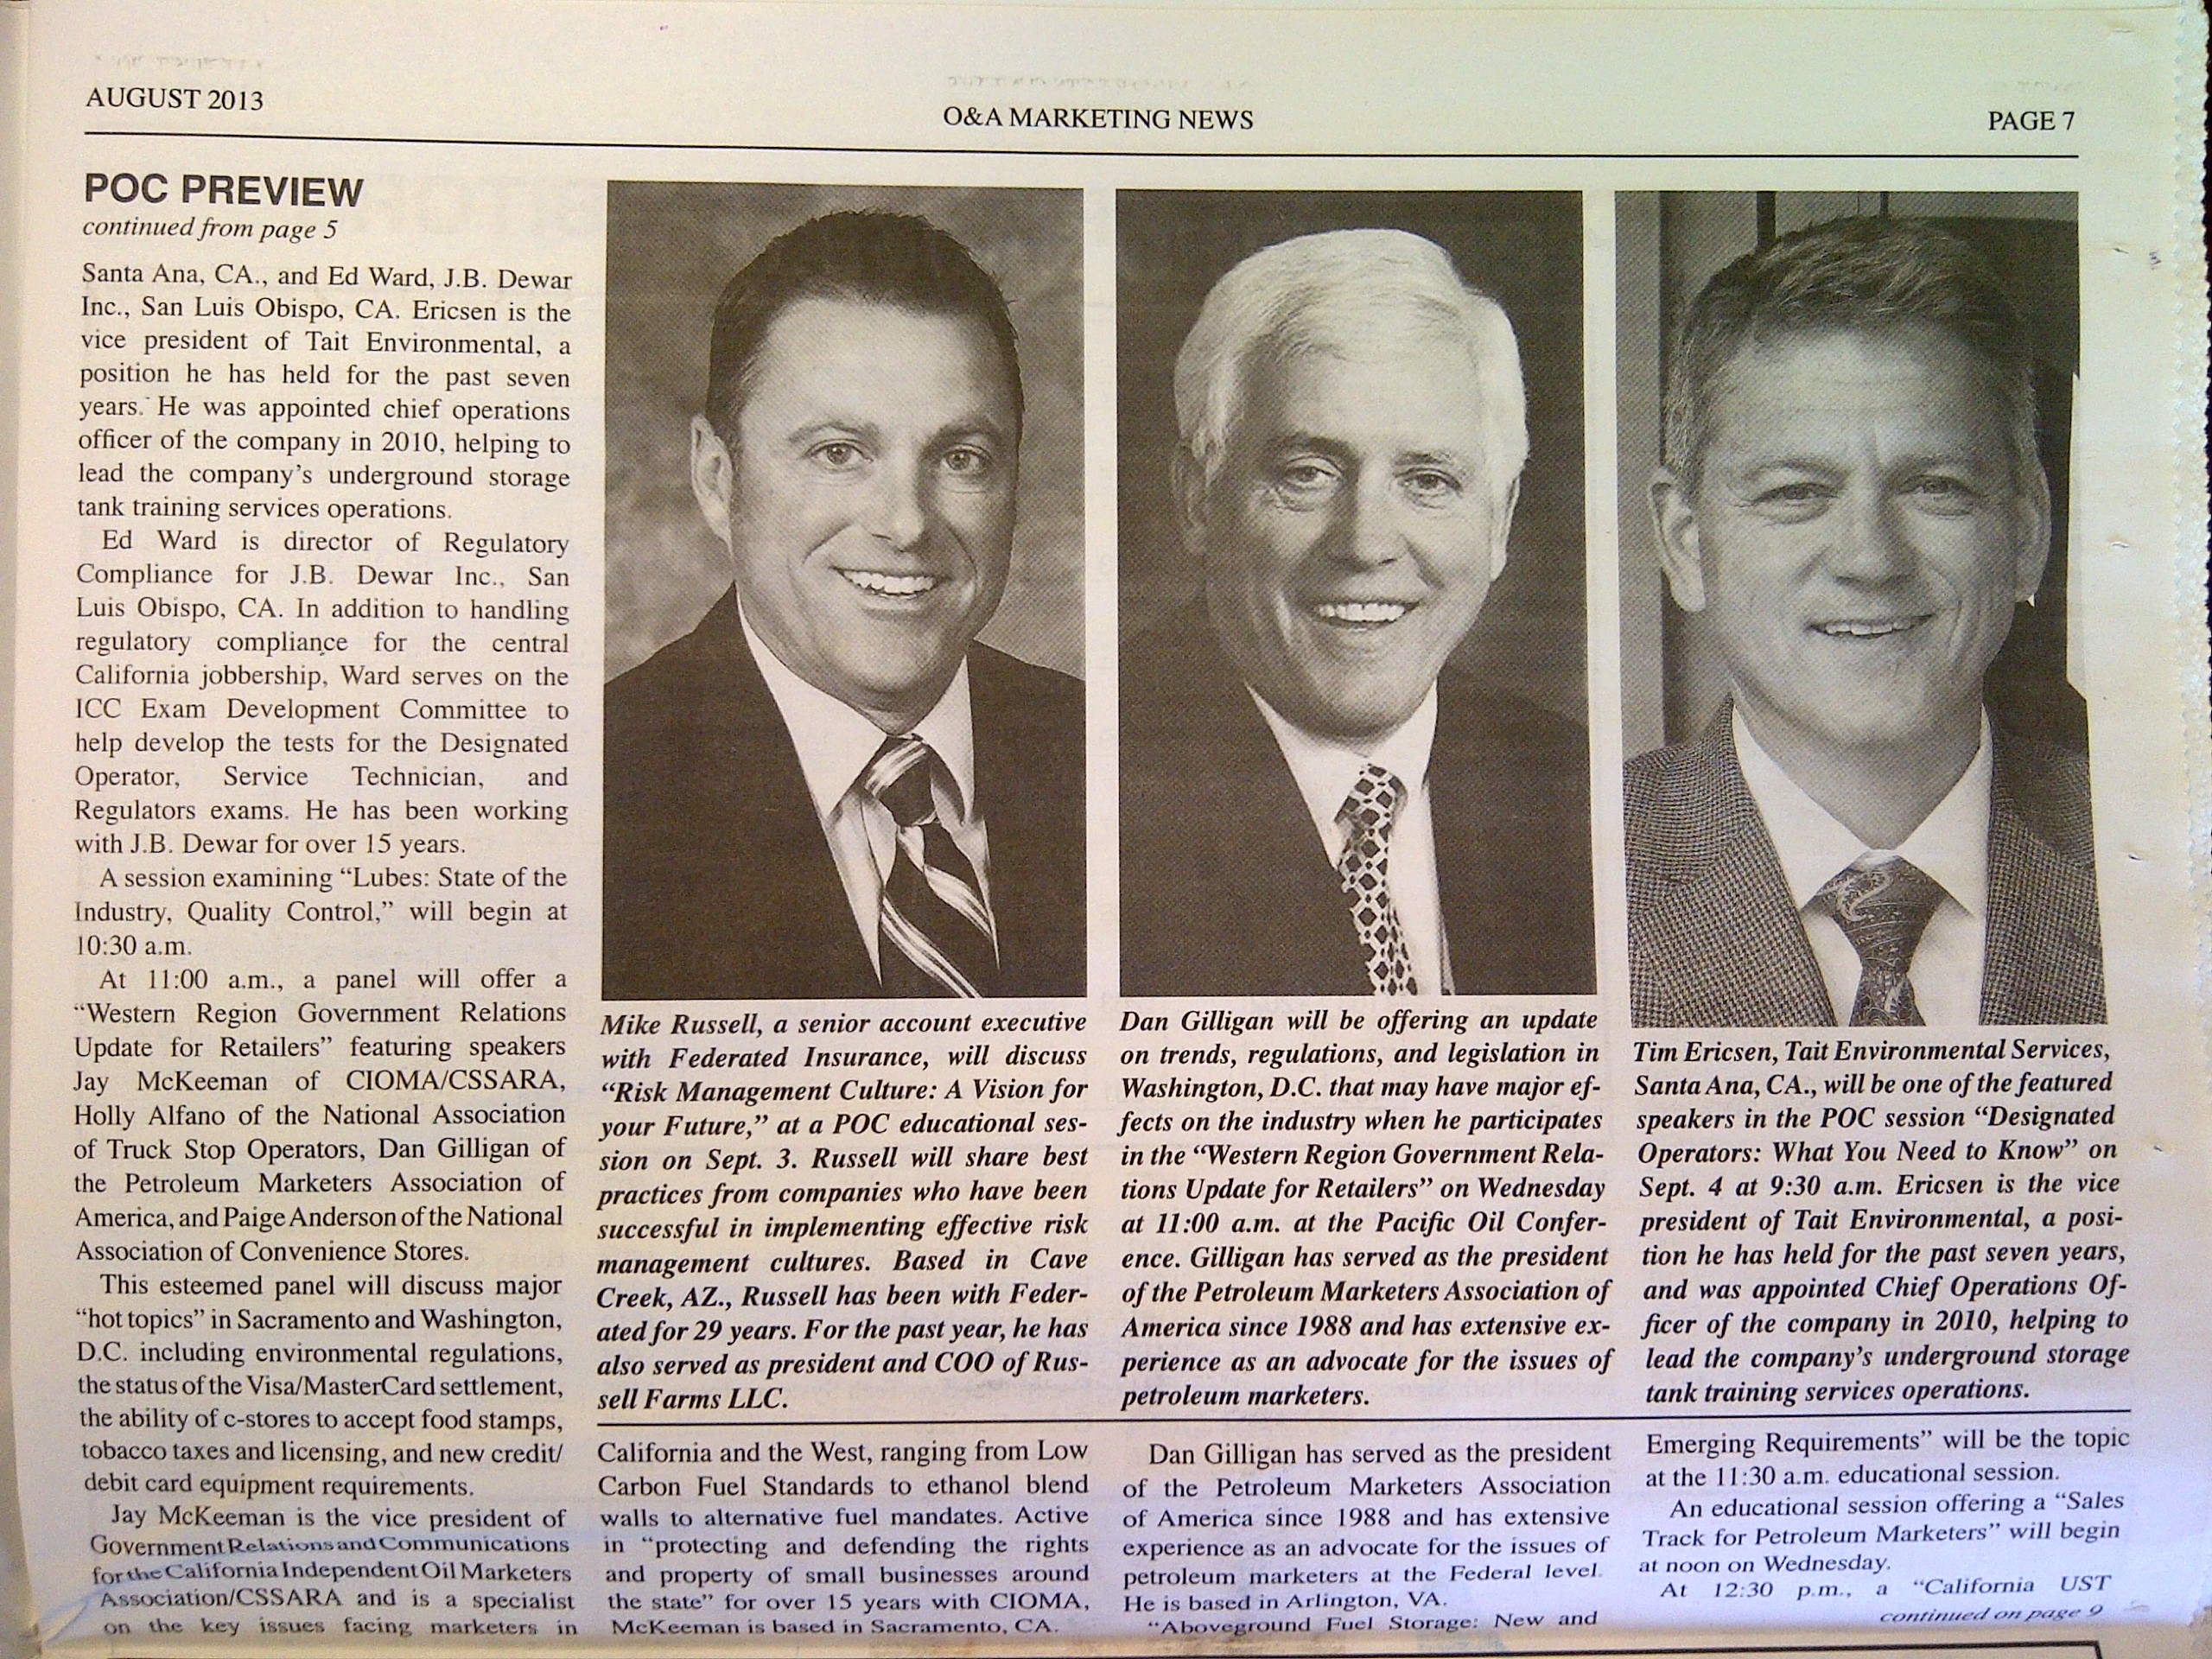 Tim Ericsen, COO of Tait Environmental Services, featured in the O&A Marketing News